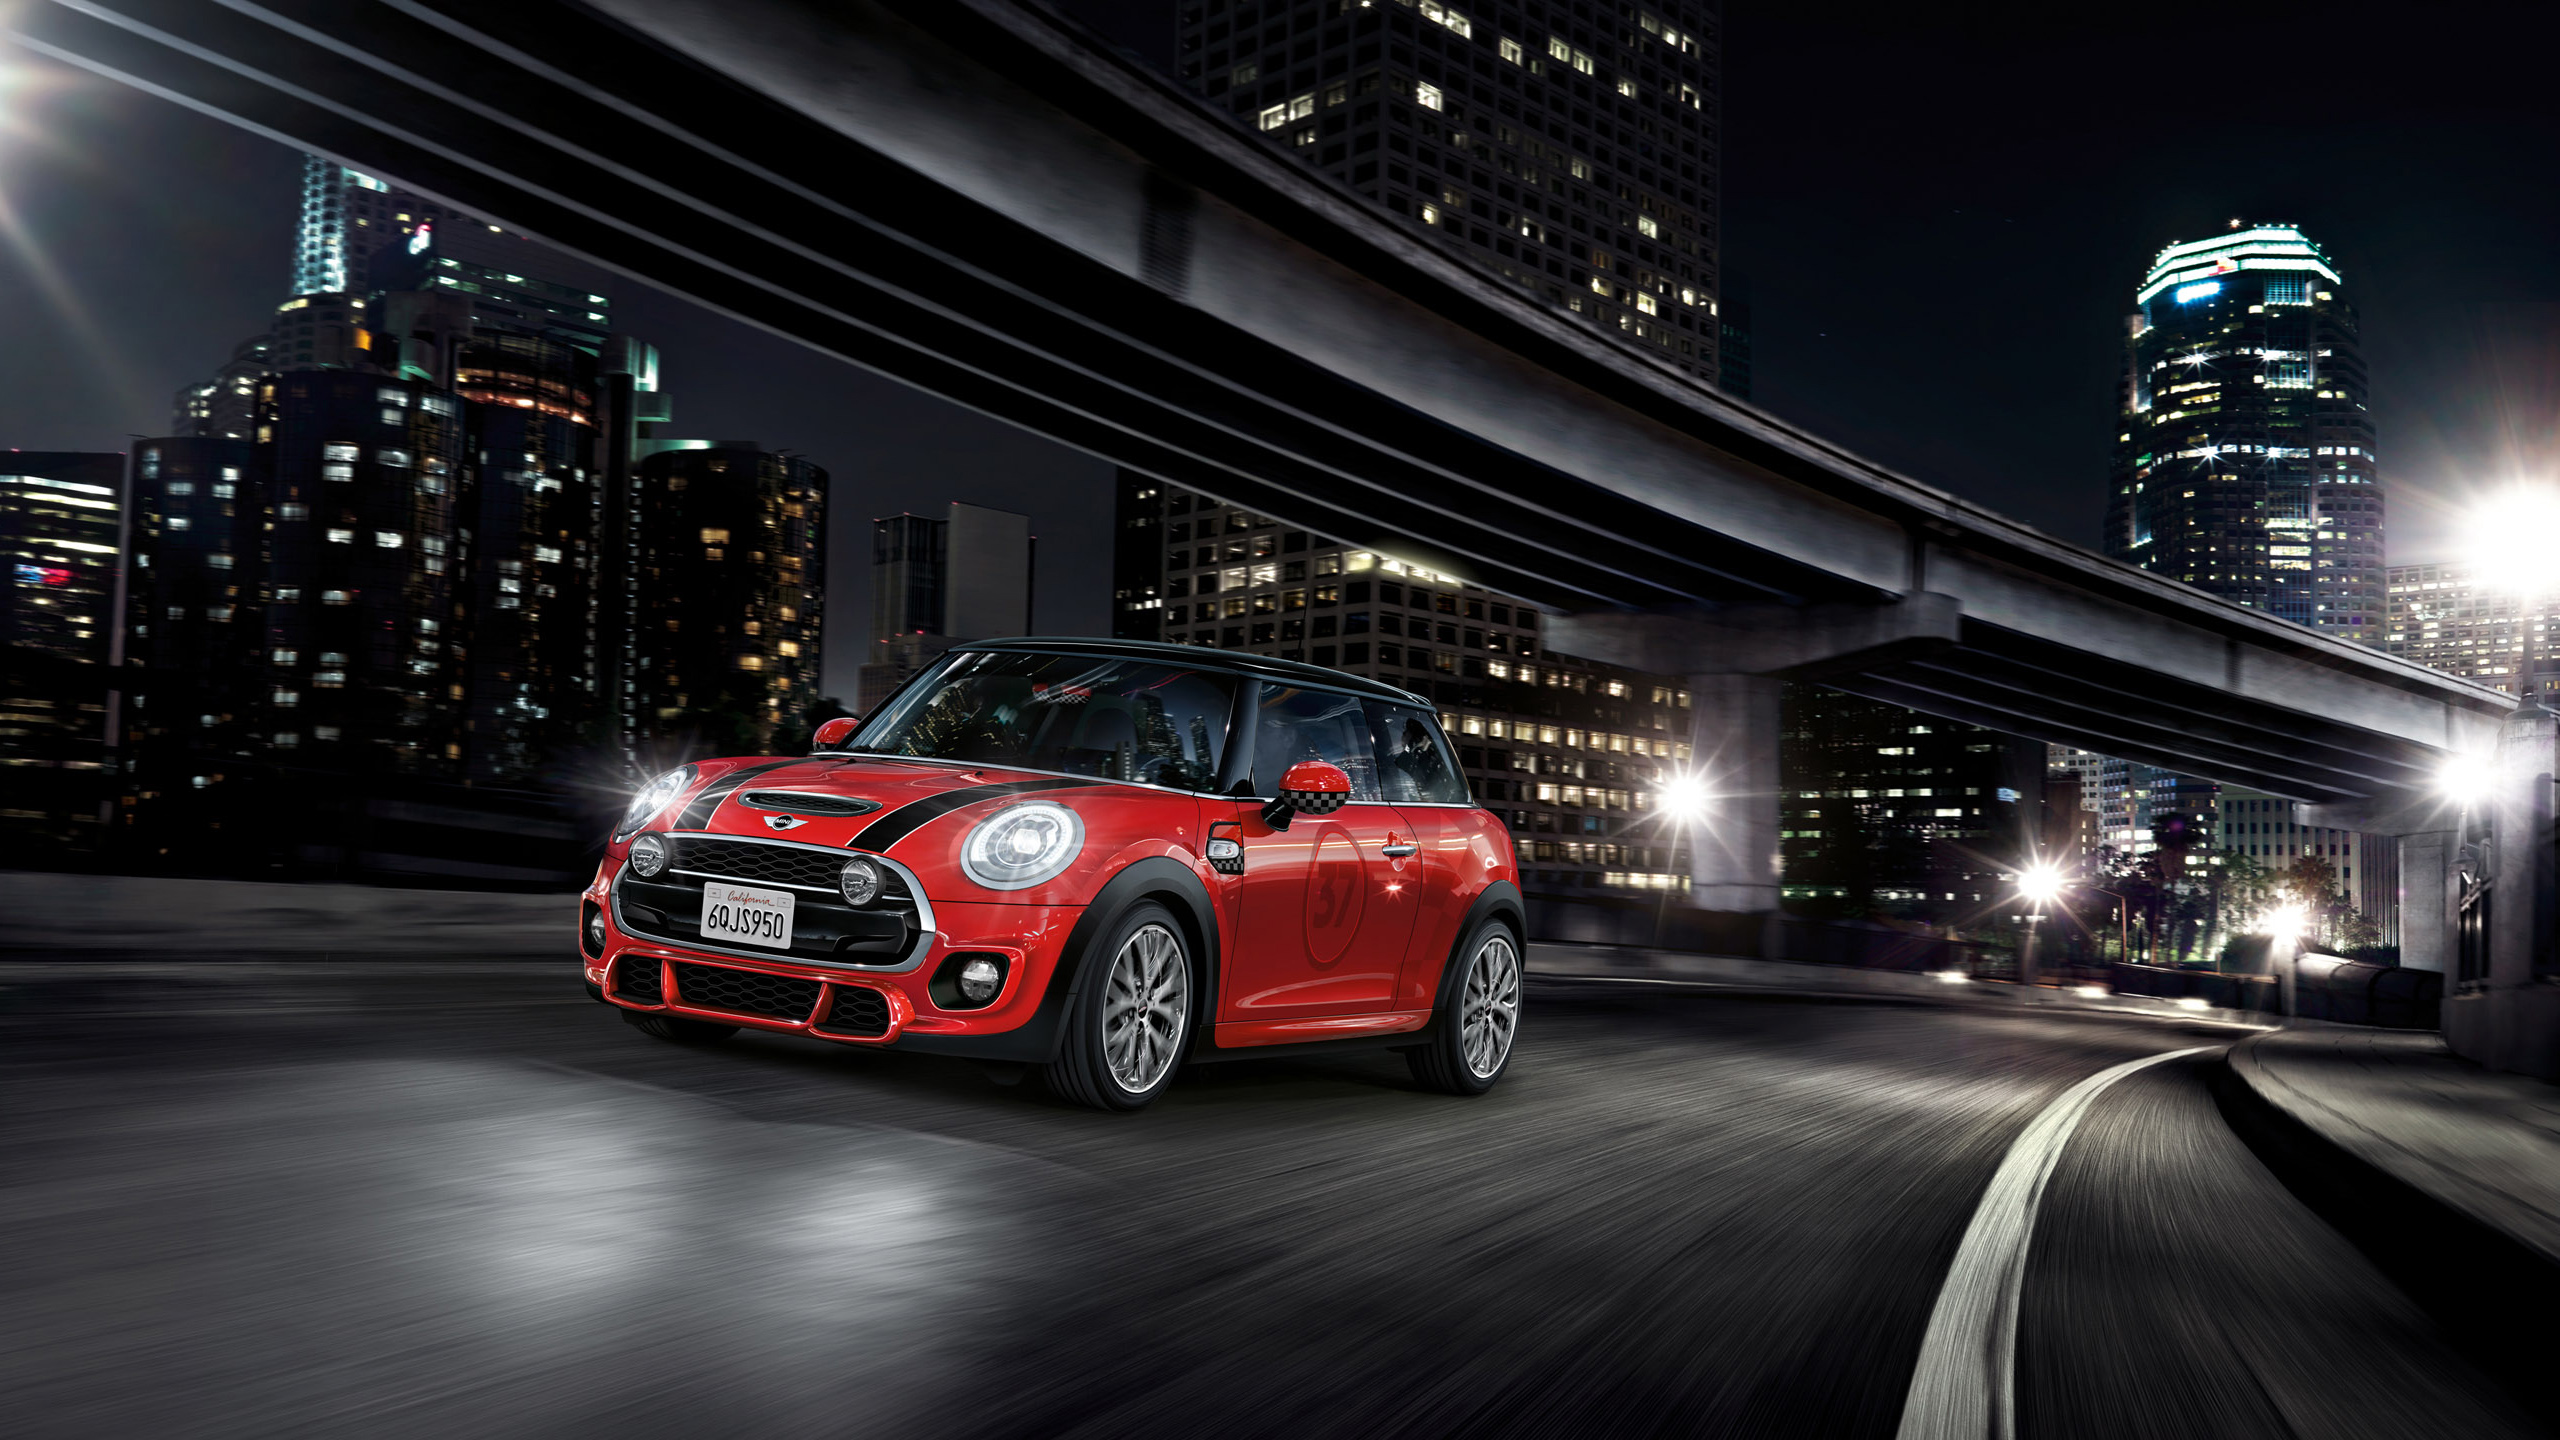 2014 Mini Cooper S F56 Wallpaper | HD Car Wallpapers